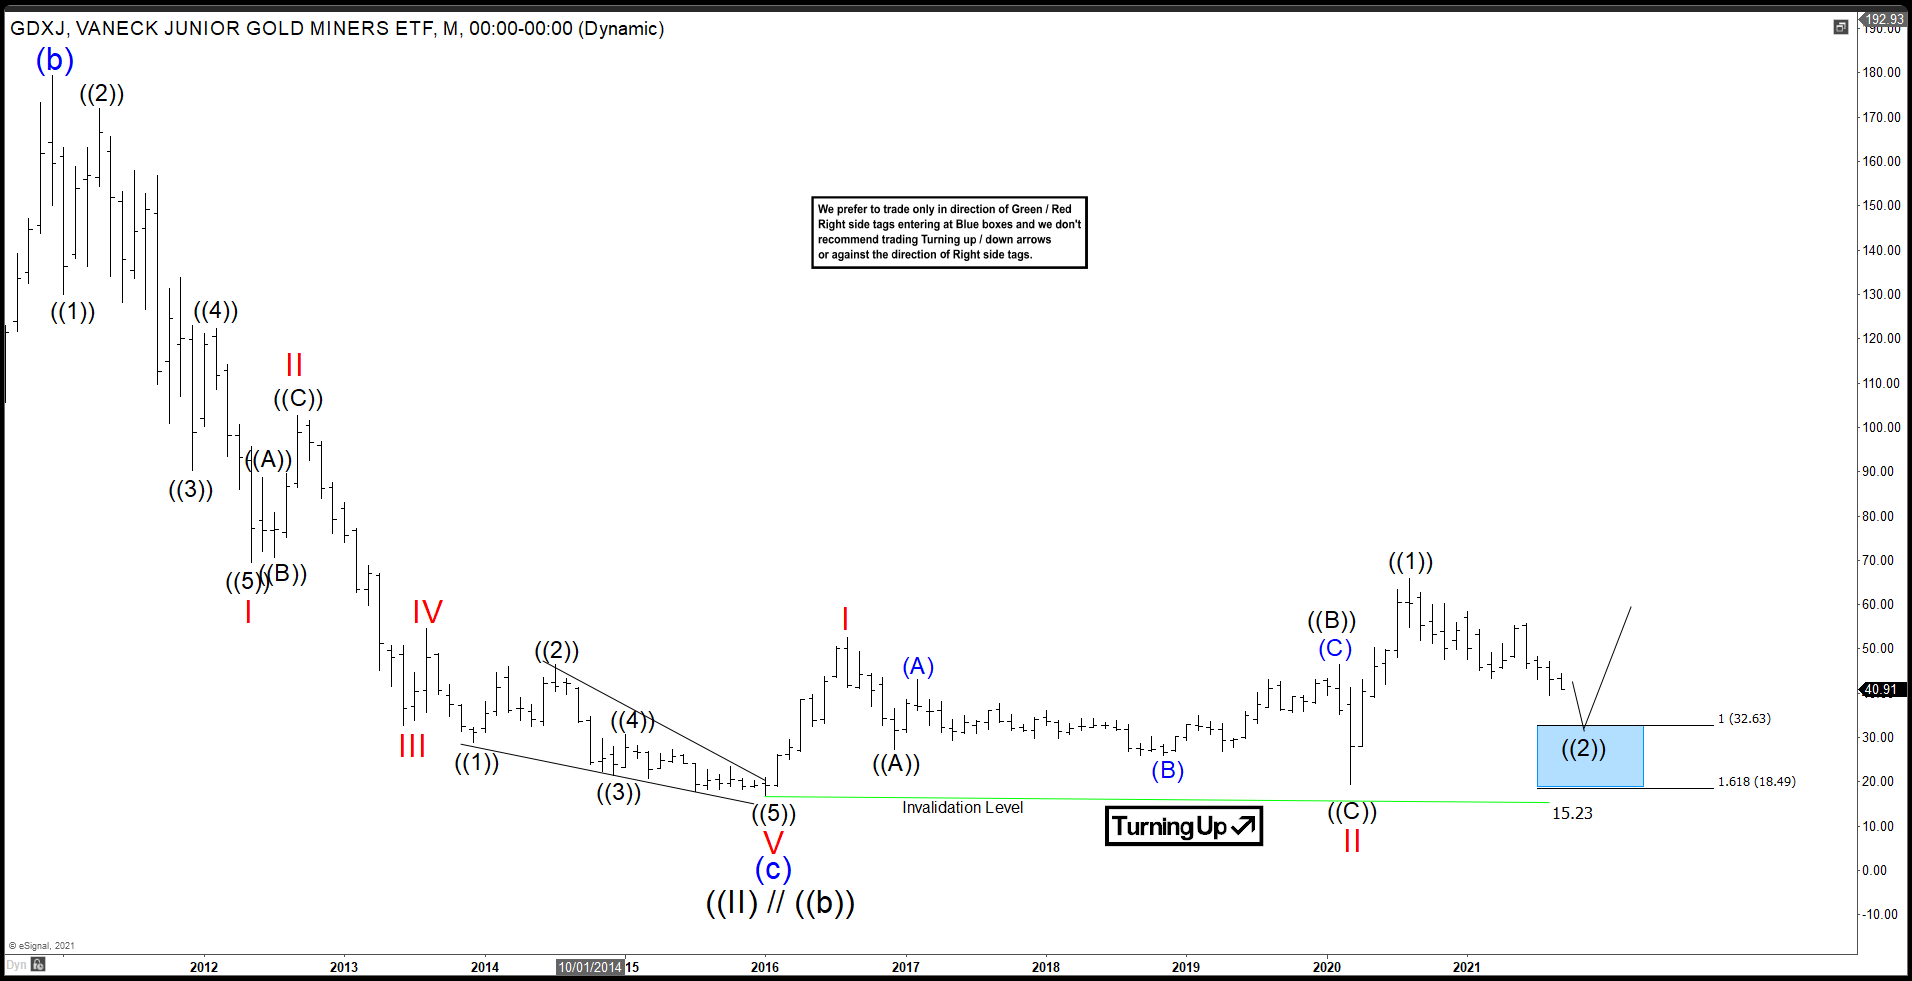 Potential Support and Turn Higher in GDXJ